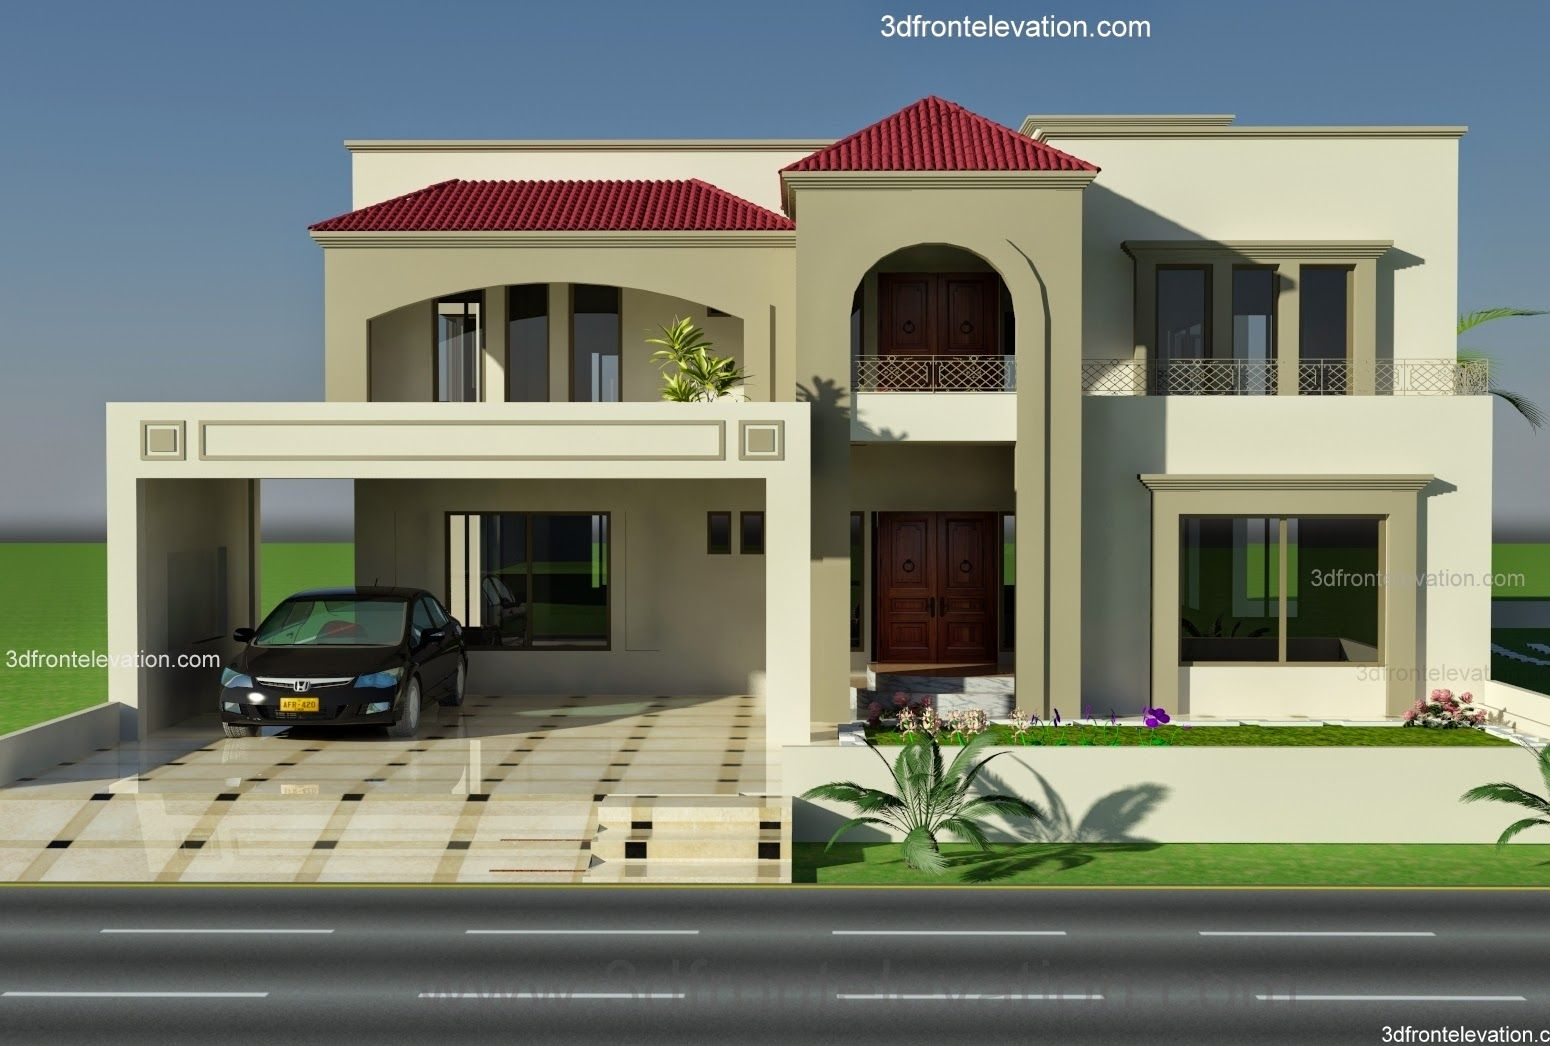 1 kanal plot house design europen style in bahria town, lahore